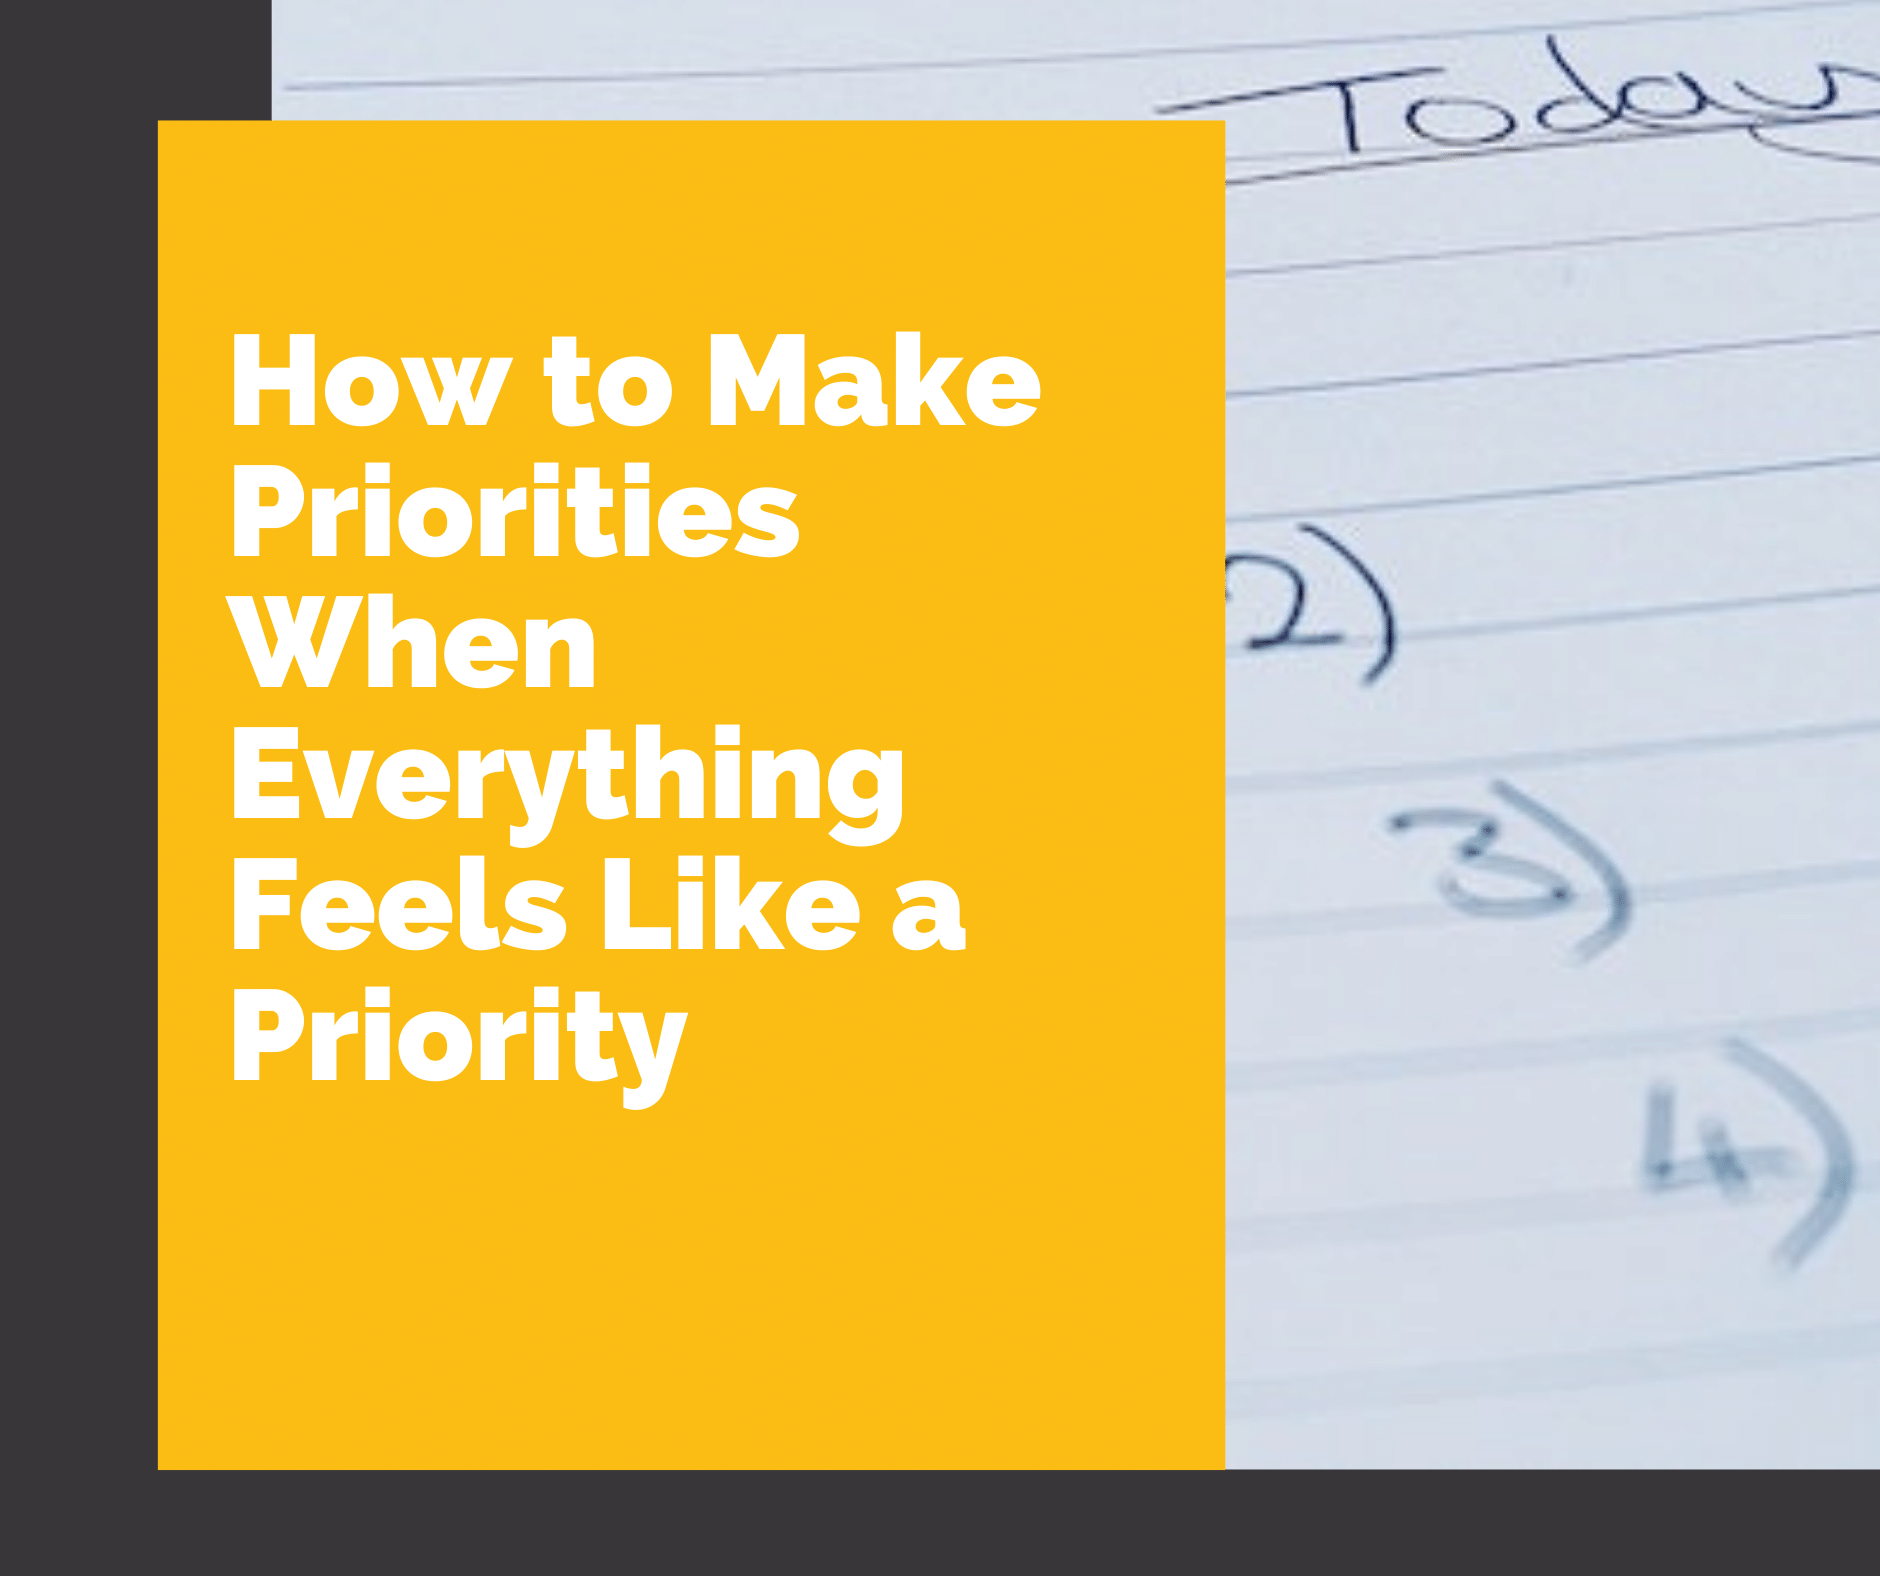 how to make priorities when everything feels like a priority